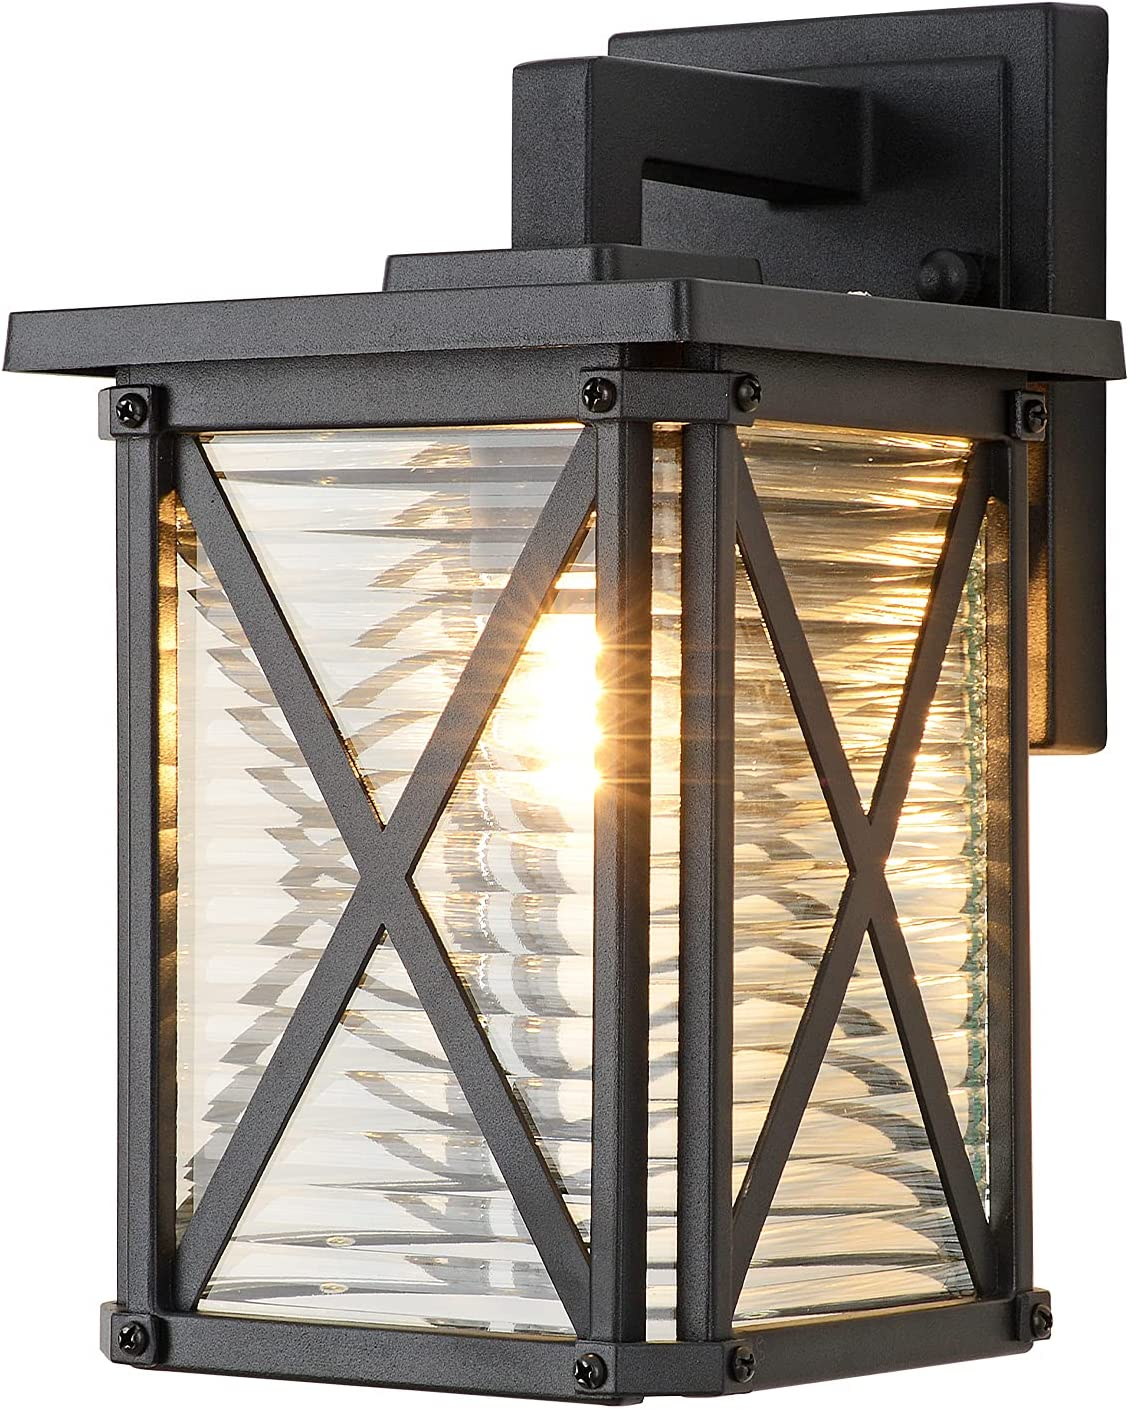 Modern Outdoor Wall Sconce Light Black Alumi with Fixtures Sales results Max 41% OFF No. 1 Matte